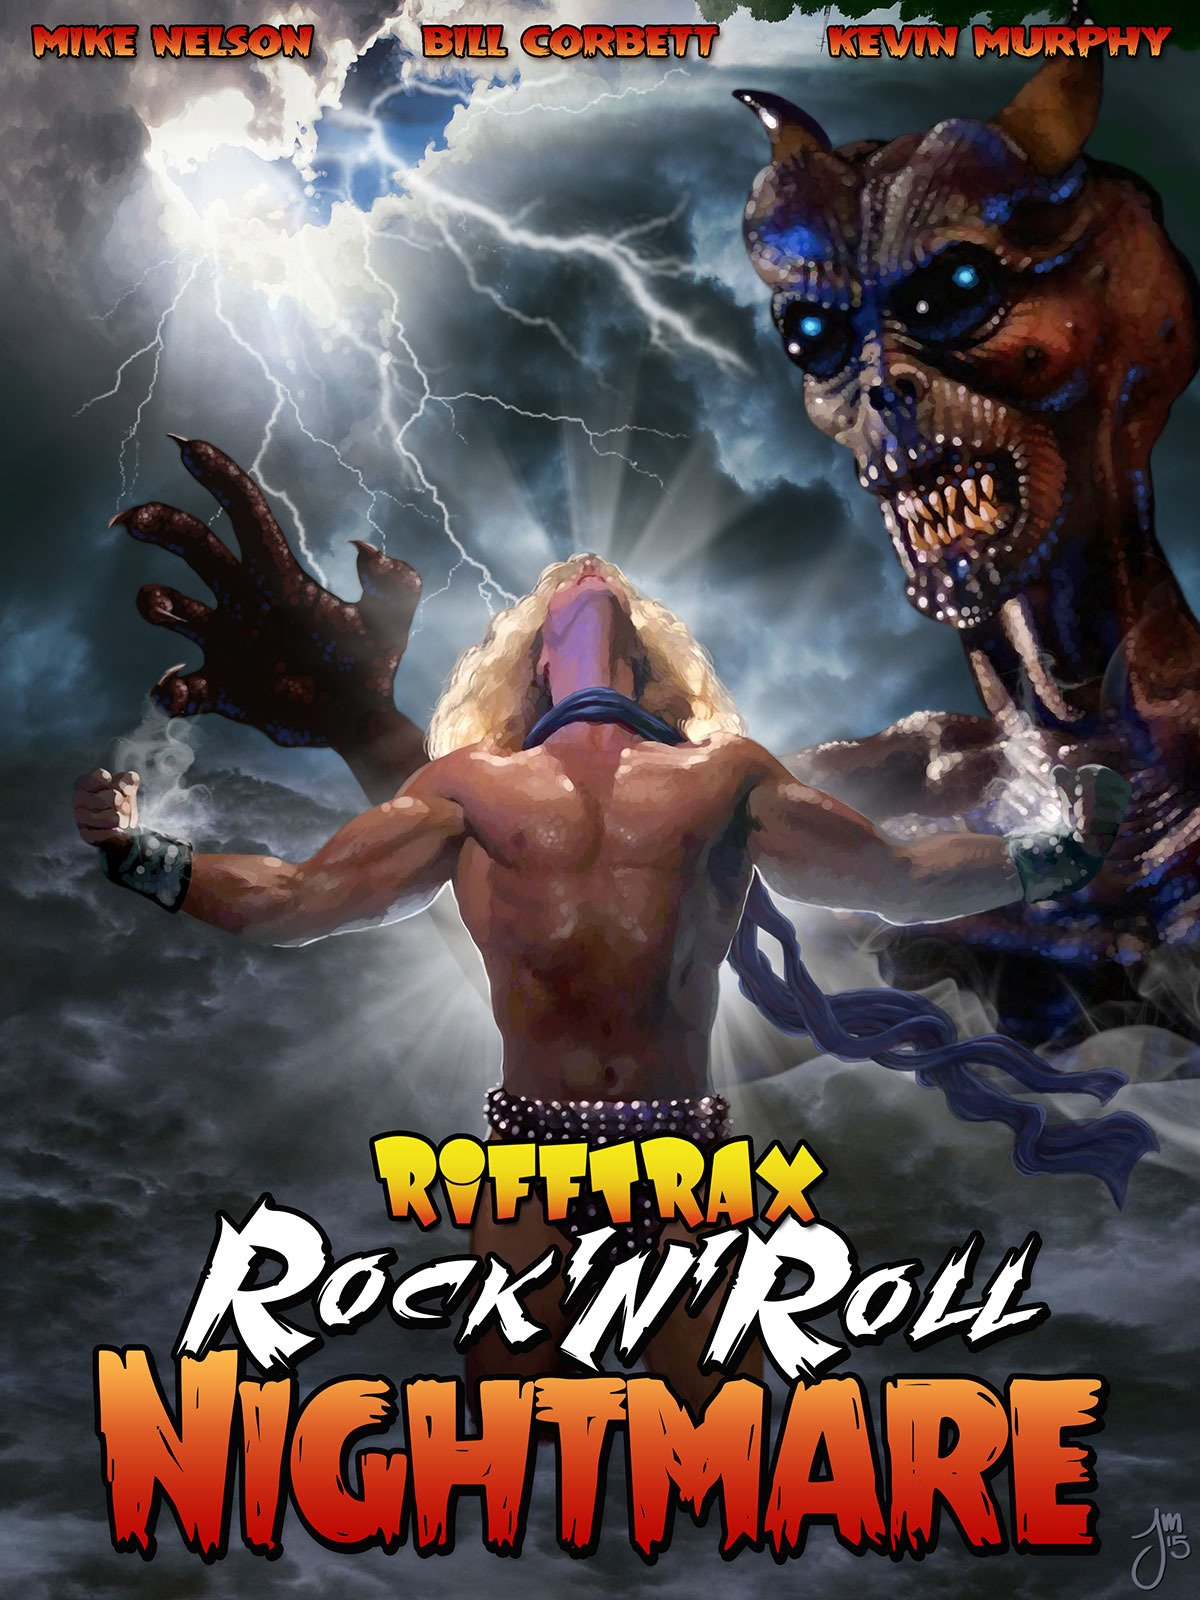 RiffTrax: Rock N Roll Nightmare